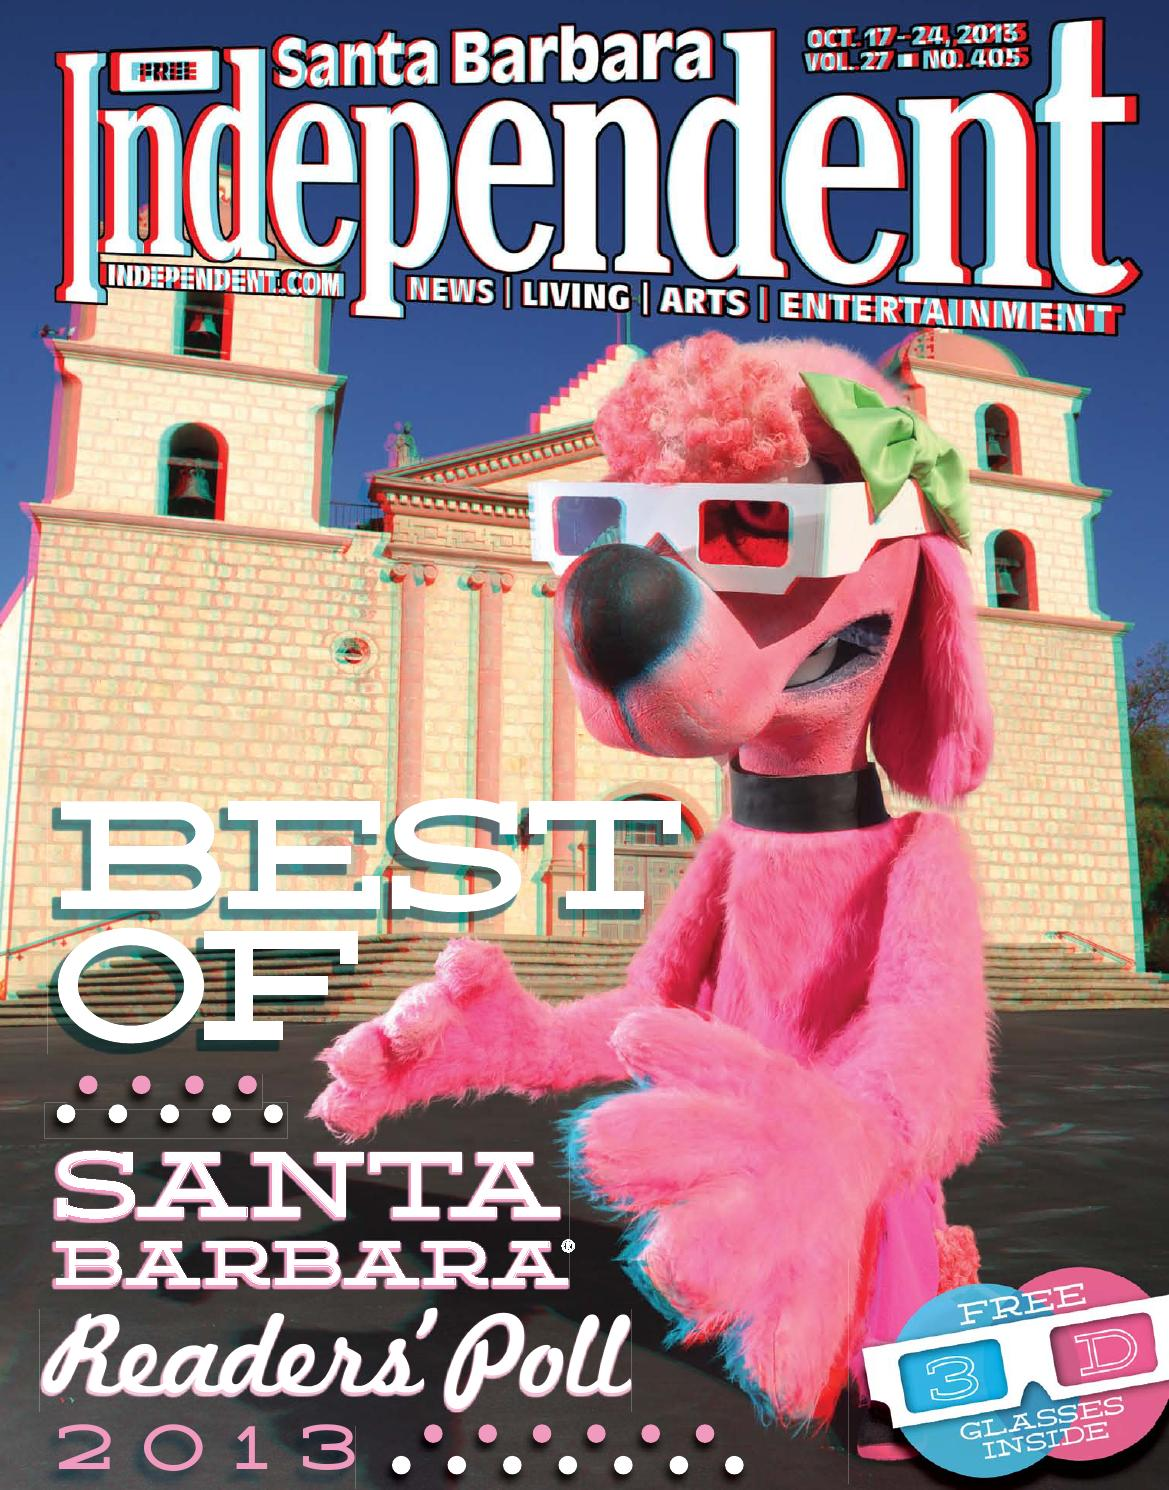 santa barbara independent 10 17 13 by sb independent issuu